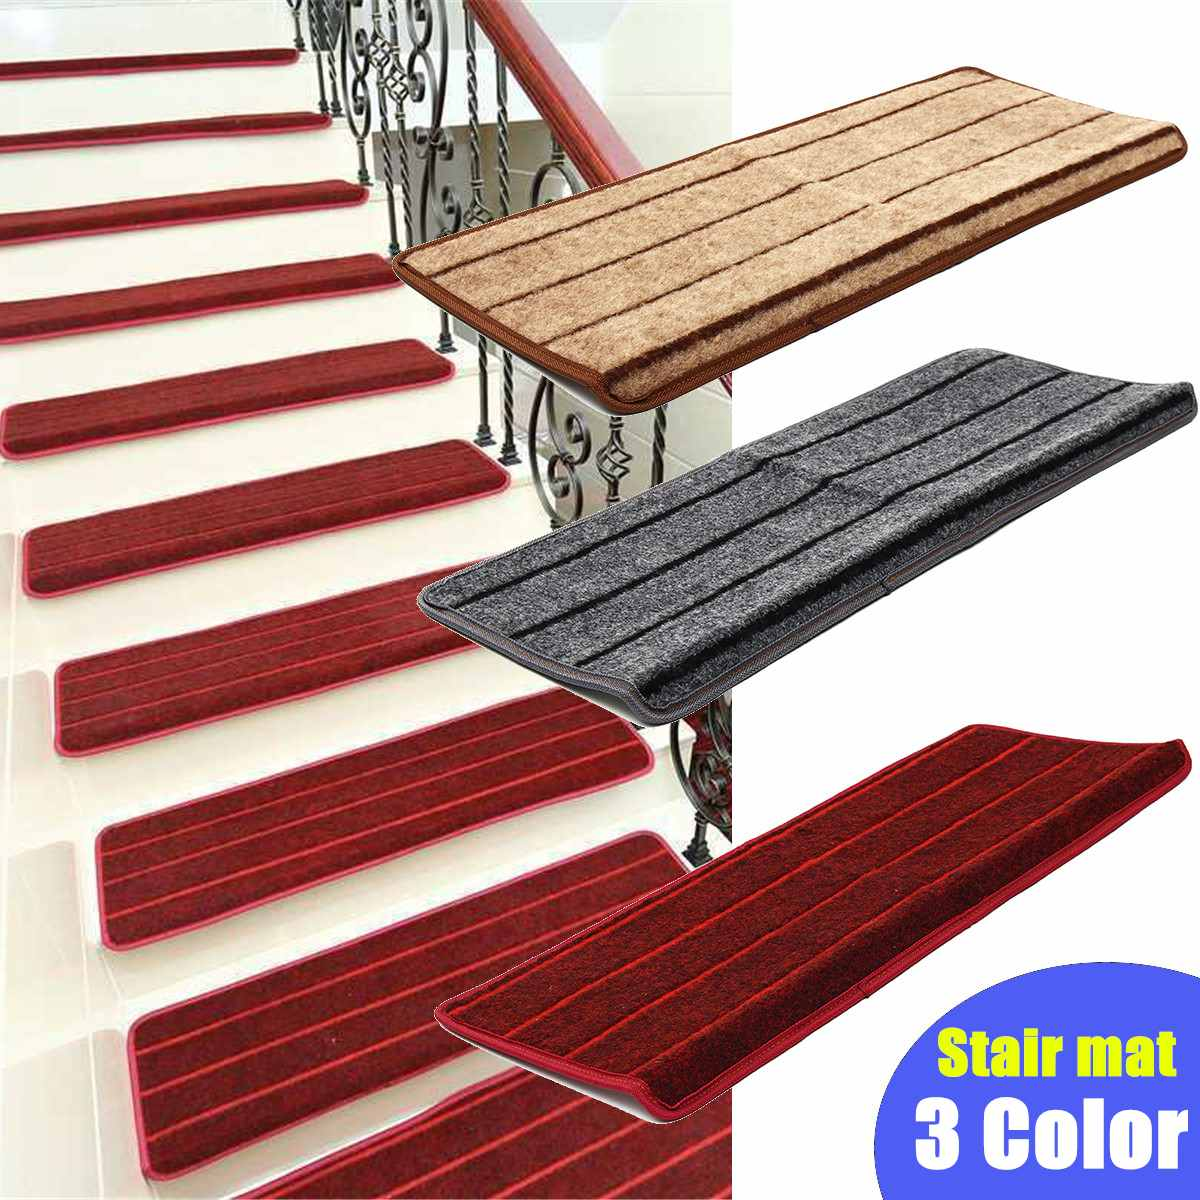 65x24cm Non Slip Tread Carpet Mats Step Staircase Mat Area Rugs Stairs Protection Cover Pad Home Decoration 3 Colors